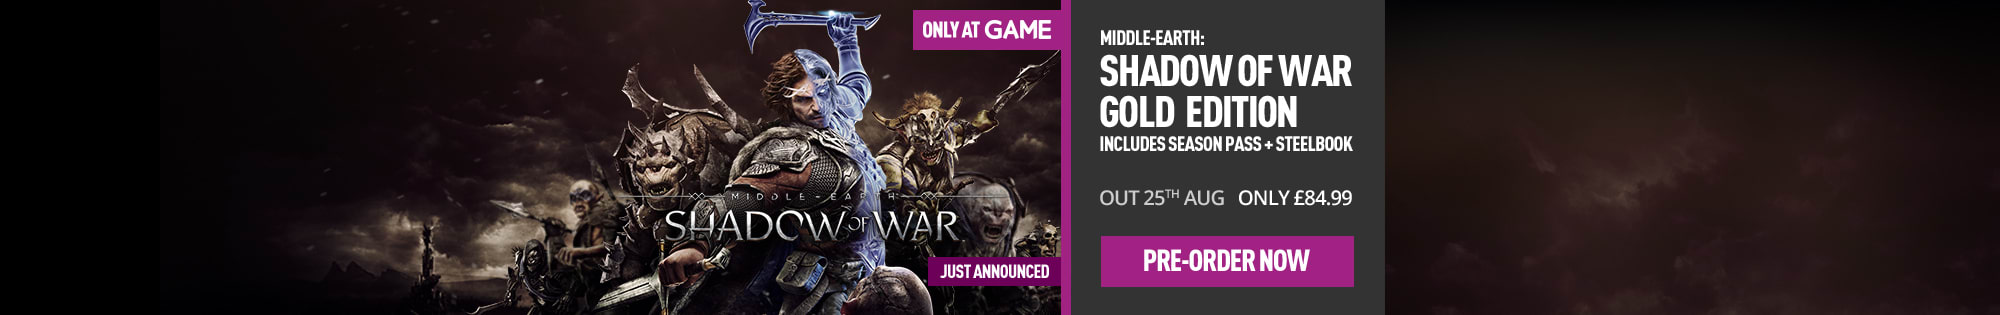 Middle-earth: Shadow of War Gold Edition - Only at GAME  for Xbox One and Playstation 4